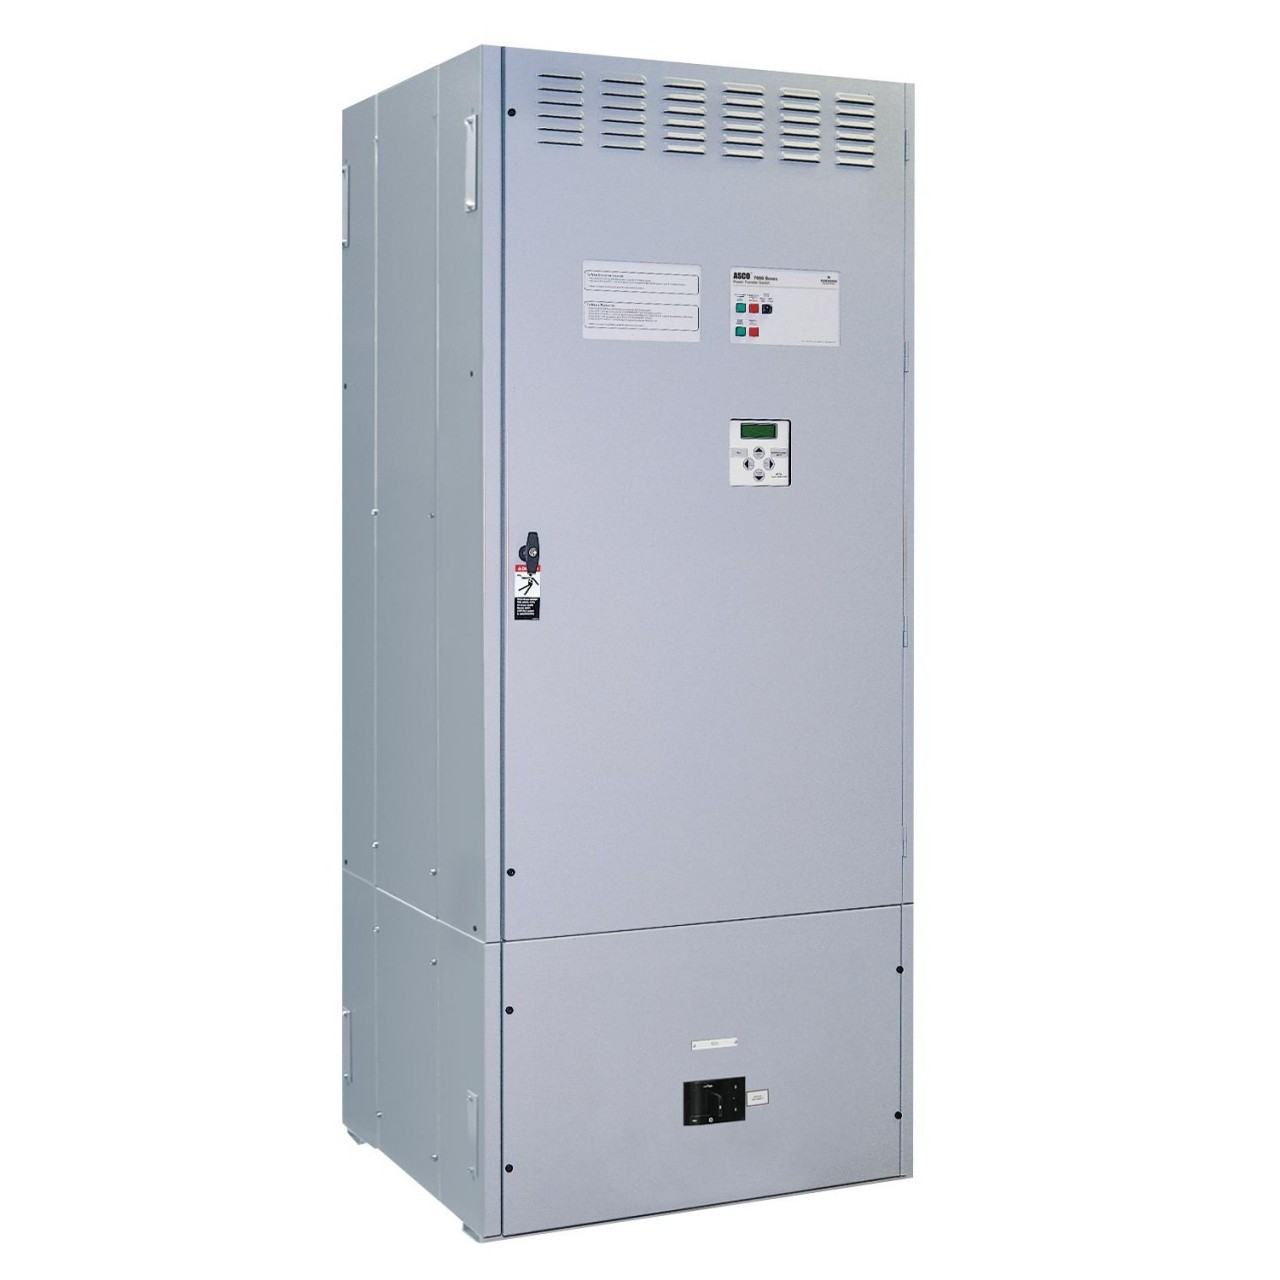 Asco 7000SE Auto Transfer Switch (1Ph, 1200A)